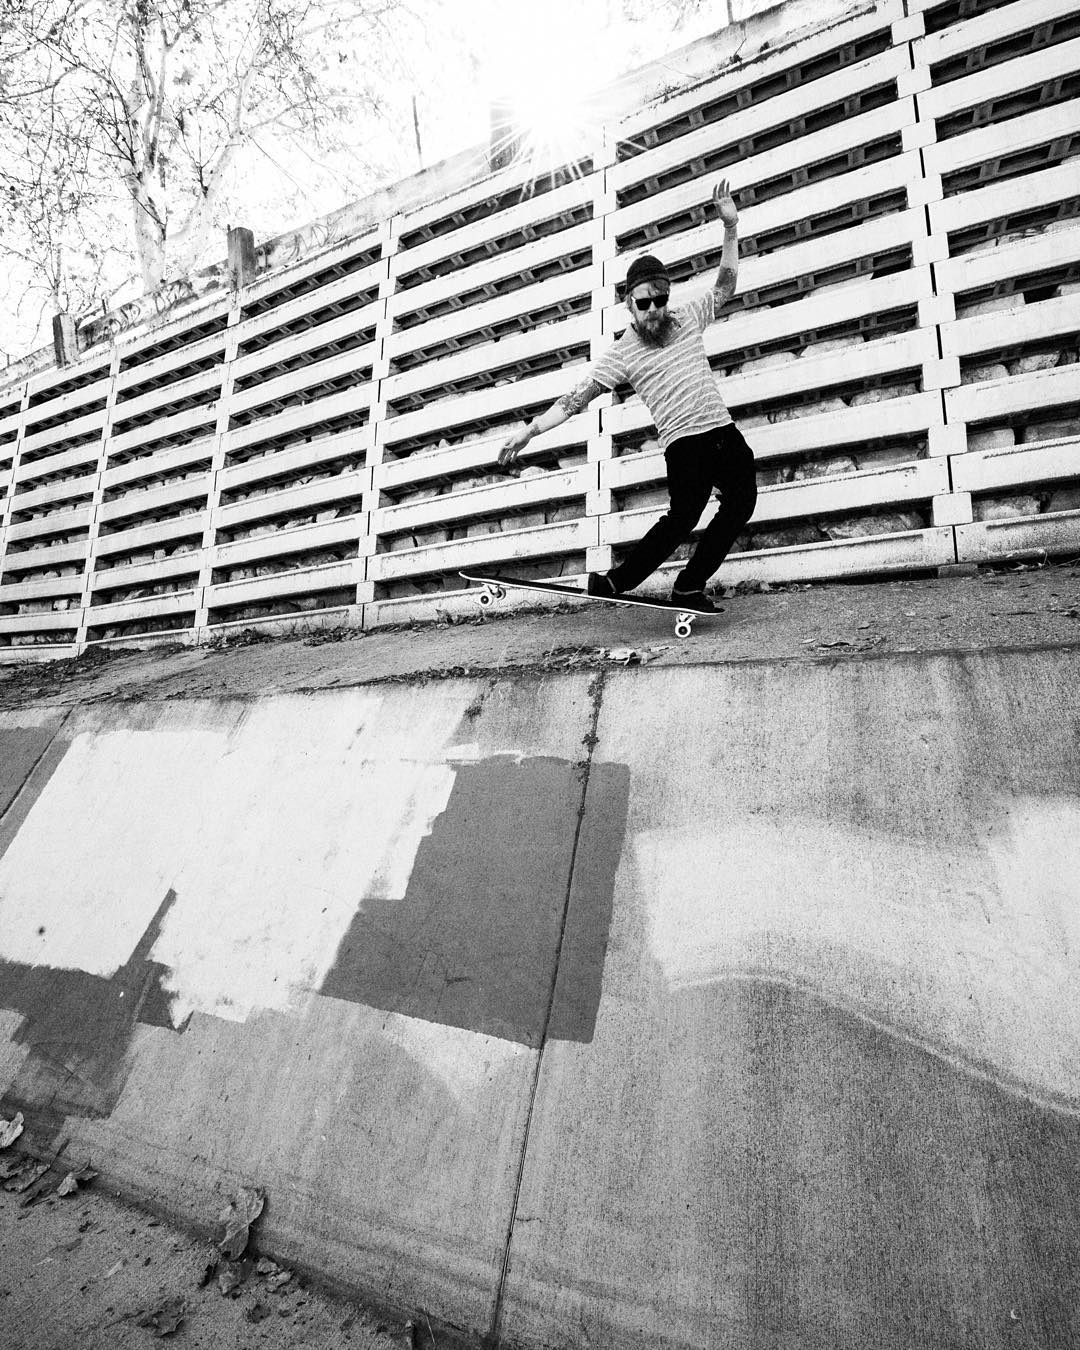 @petermarkgraf with a stylish nose manual above the wall on the LA river. photo @theduster22 #caliber50